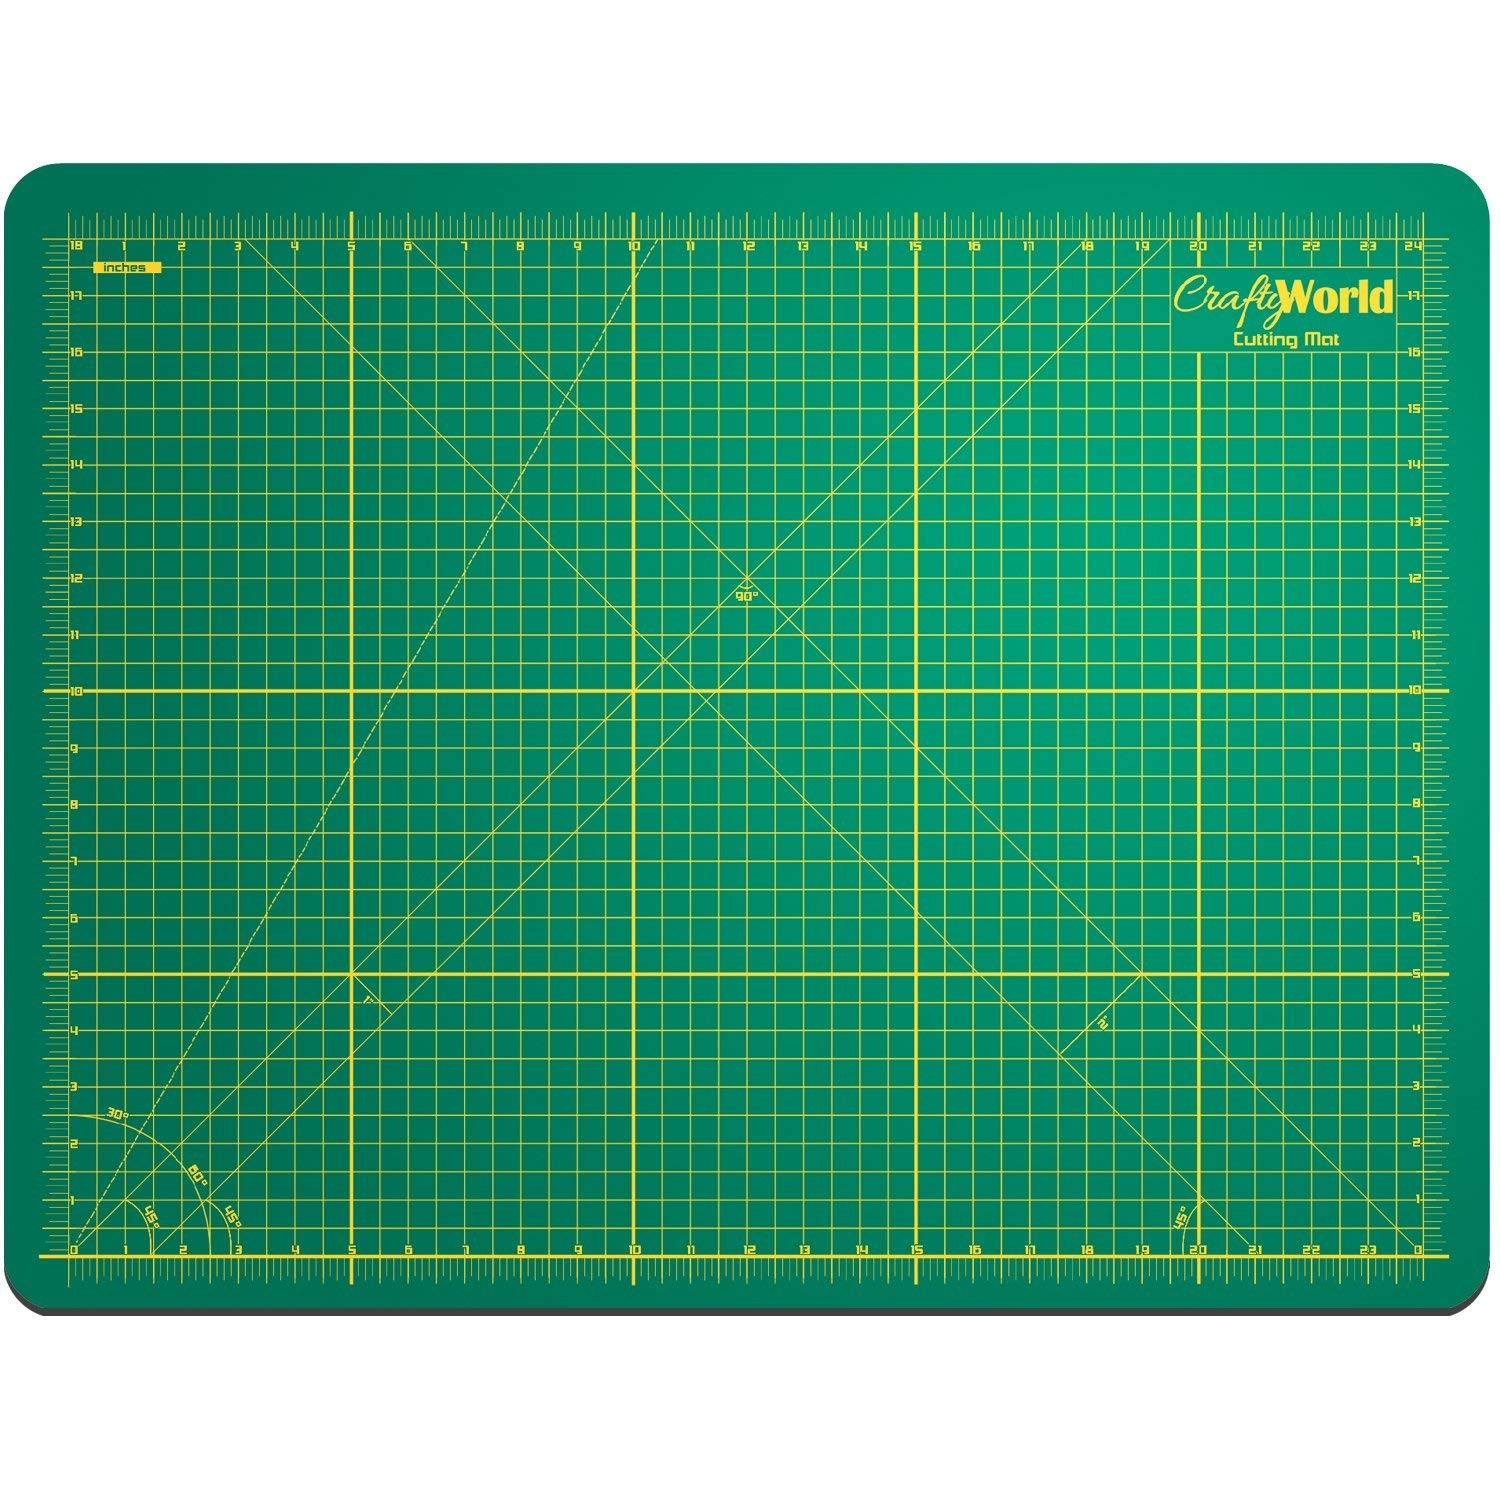 Crafty World Deluxe Cutting Mats - Double Sided Used by Pro Hobbyists - Self Healing Cutting Mat - Doesn't Slip, Extra Long Lasting & Easy to Read Markings - 18 x 24 Inches by Crafty World